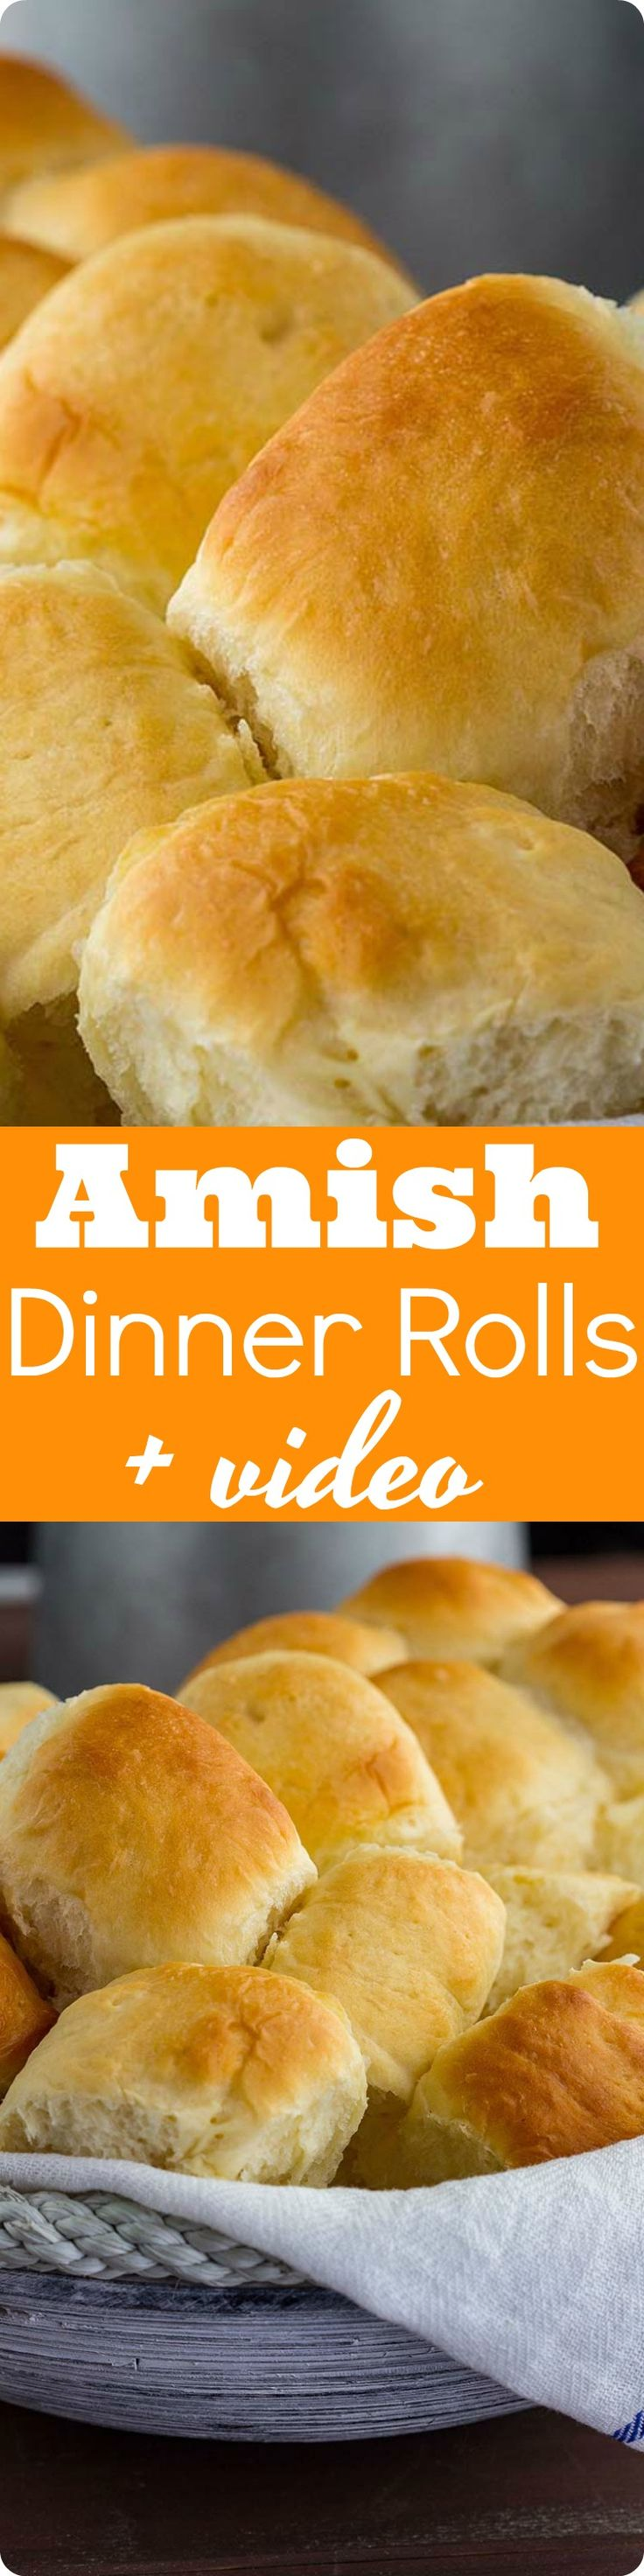 Amish Dinner Rolls | Soft yeast rolls recipe for warm fluffy buns. Made with instant mashed potato flakes, best served with any dinner comfort food. Find recipe at redstaryeast.com.